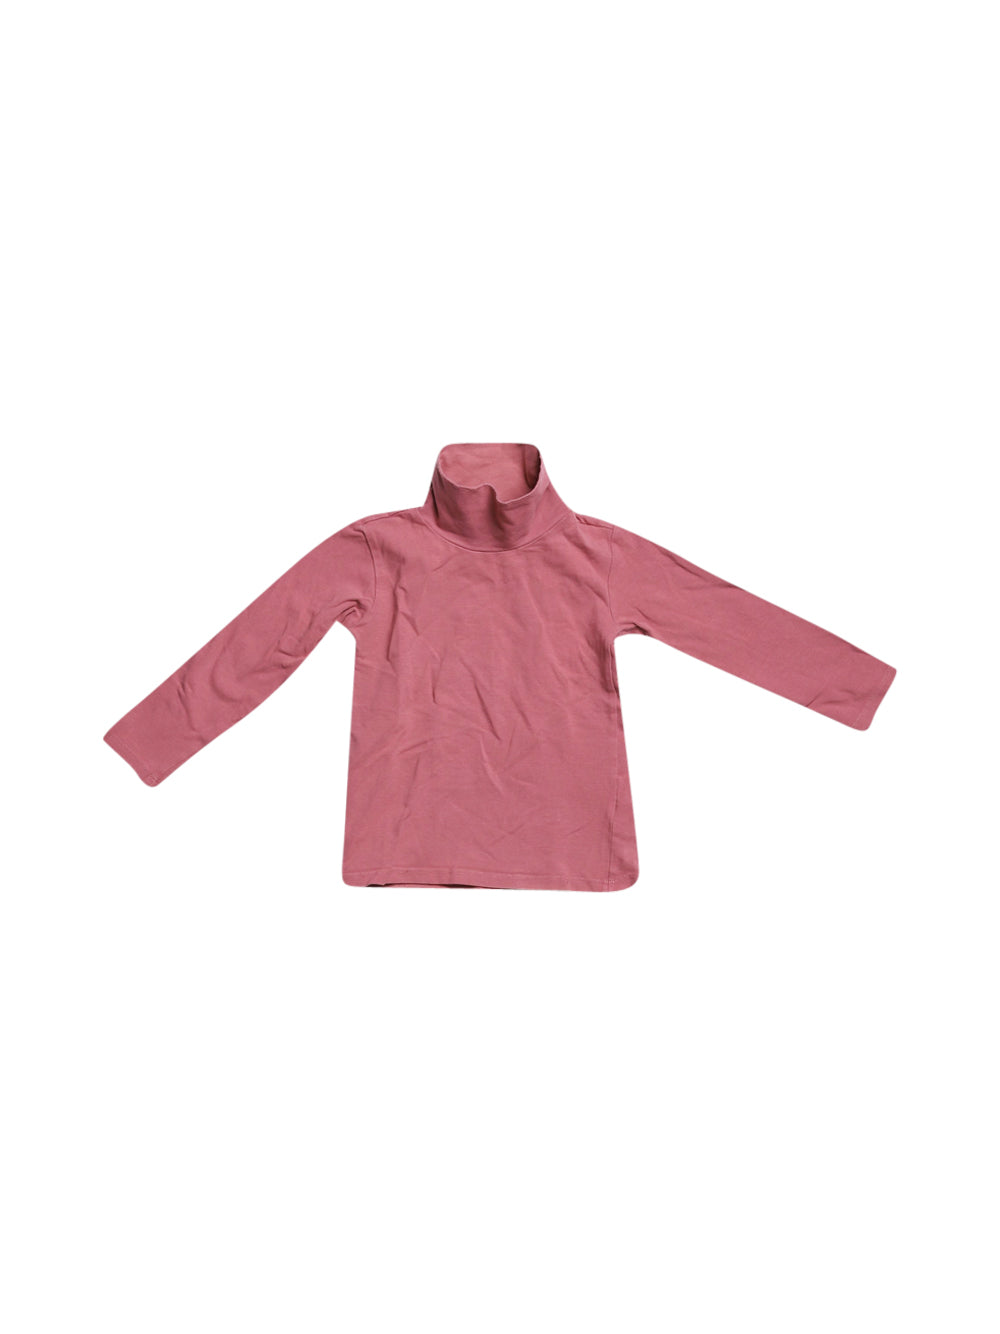 Front photo of Preloved Chicco Pink Girl's long sleeved shirt - size 18-24 mths